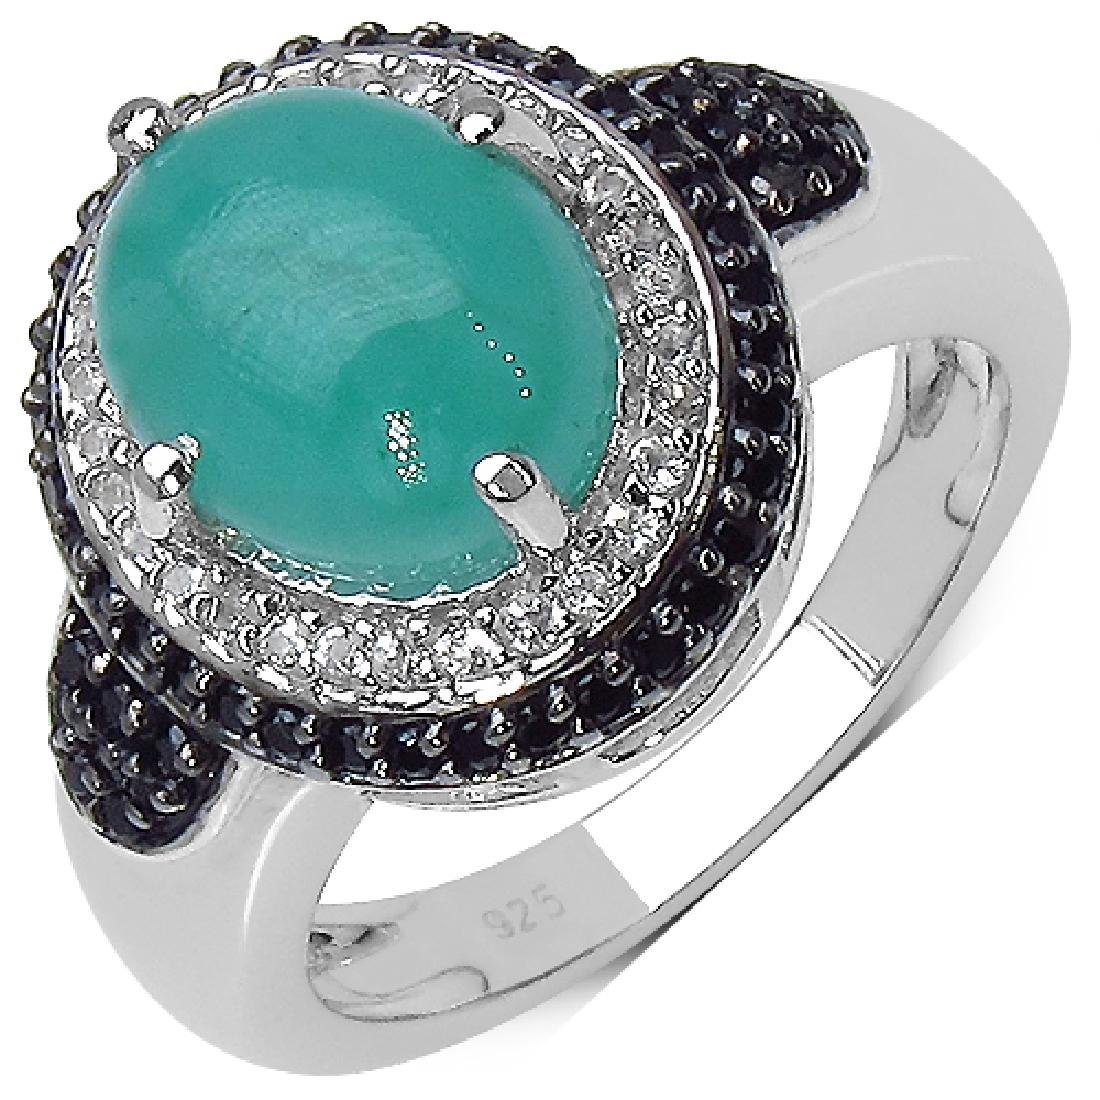 3.54 CTW Emerald Ring with 0.66 CTW Multi-Gems in